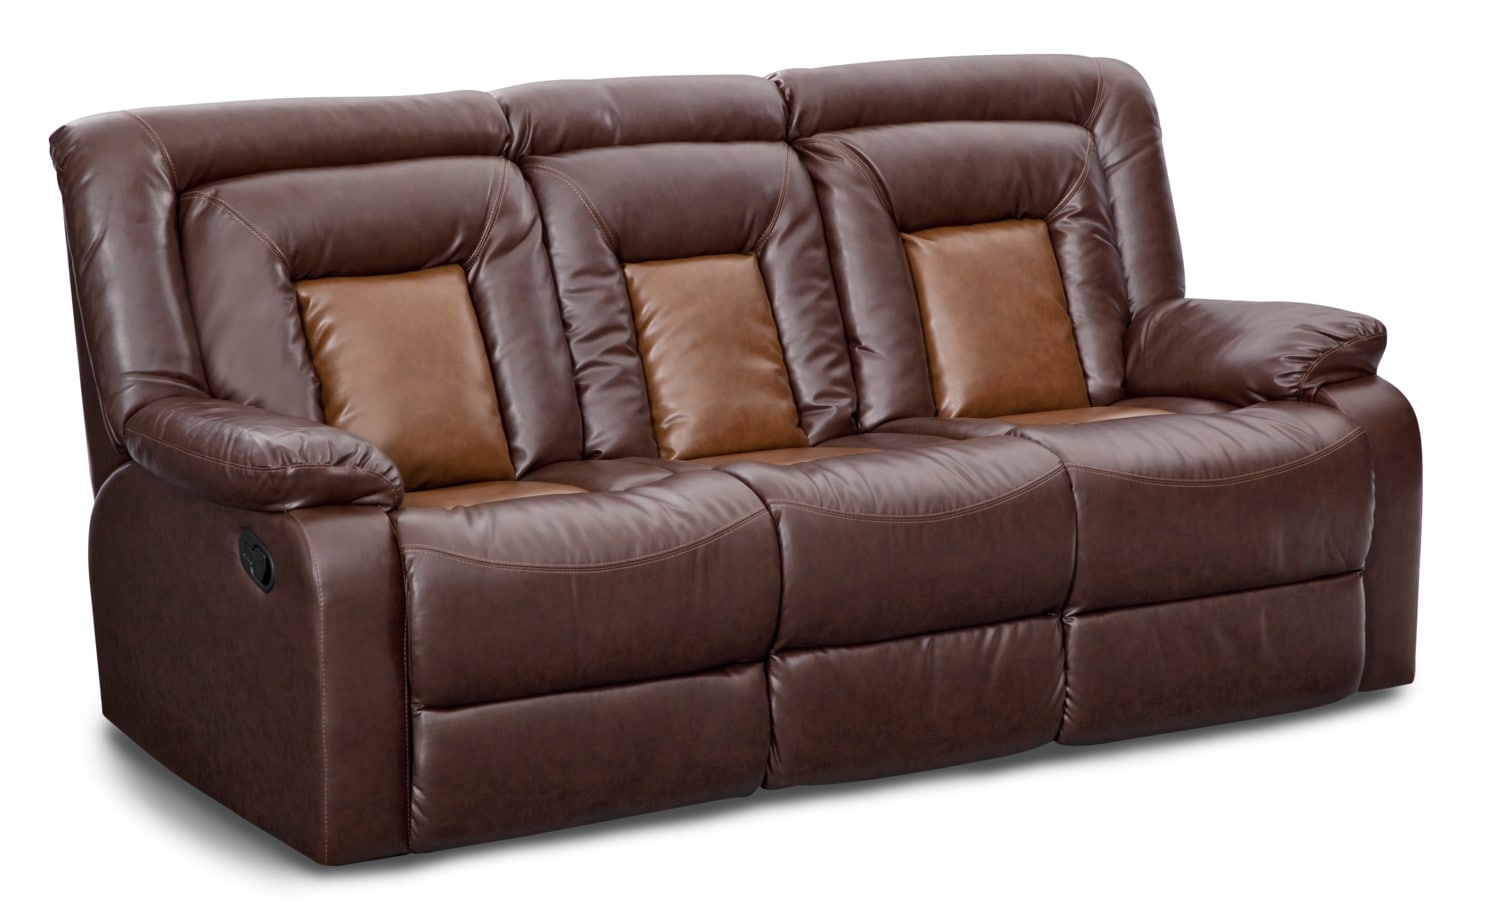 Dual Reclining Sofas Reclining Sofas Manual Recliner Couches Thesofa